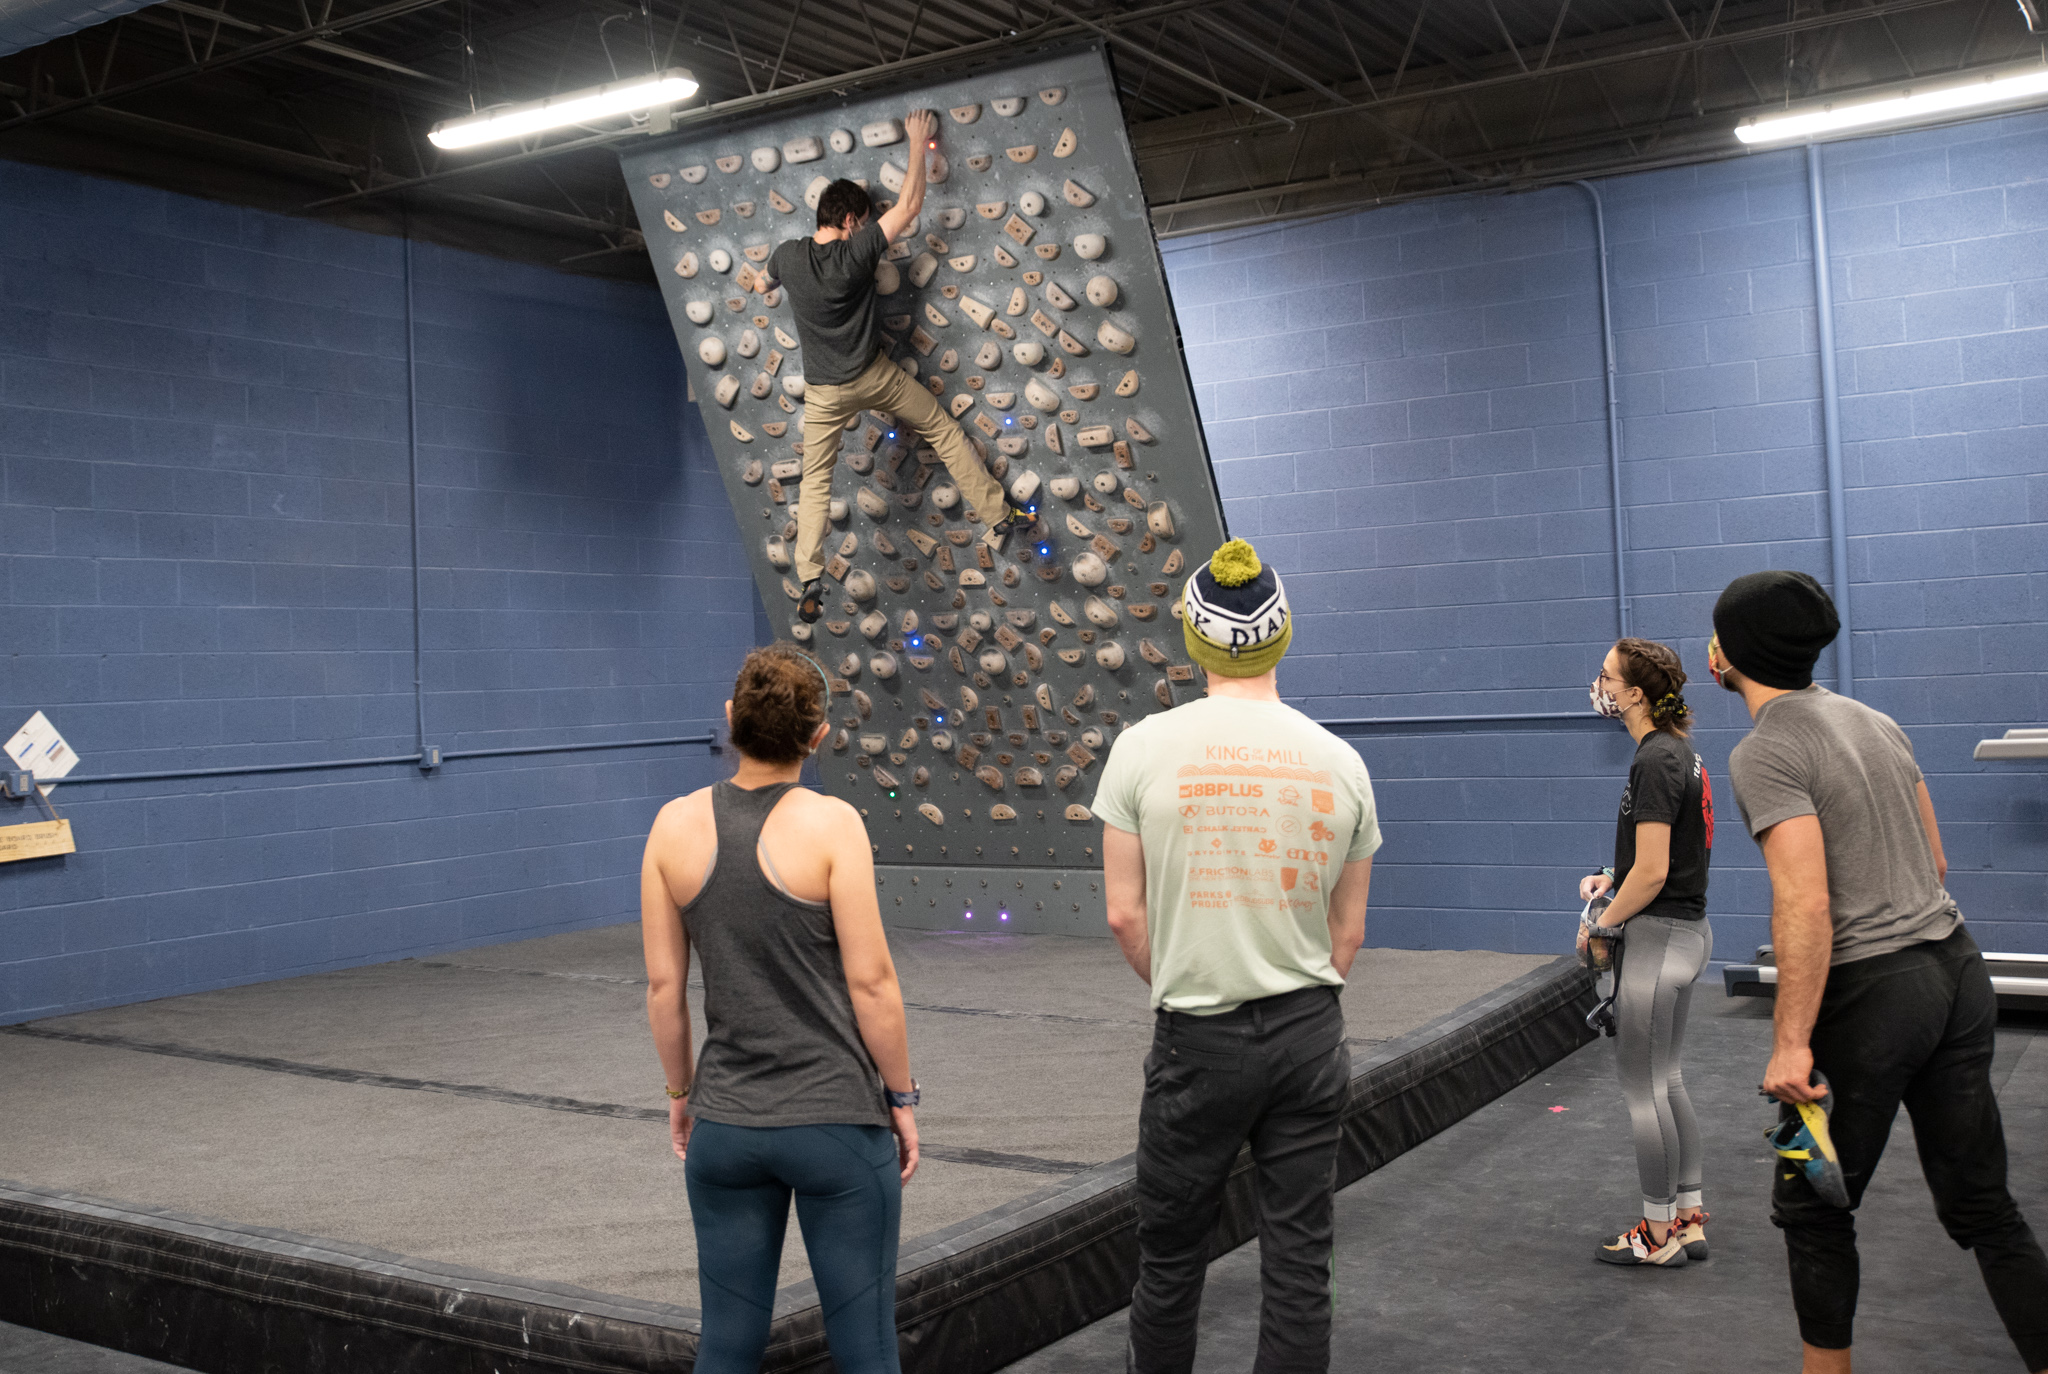 Man Climbing On The Tension Board While His Friends Cheer Him On